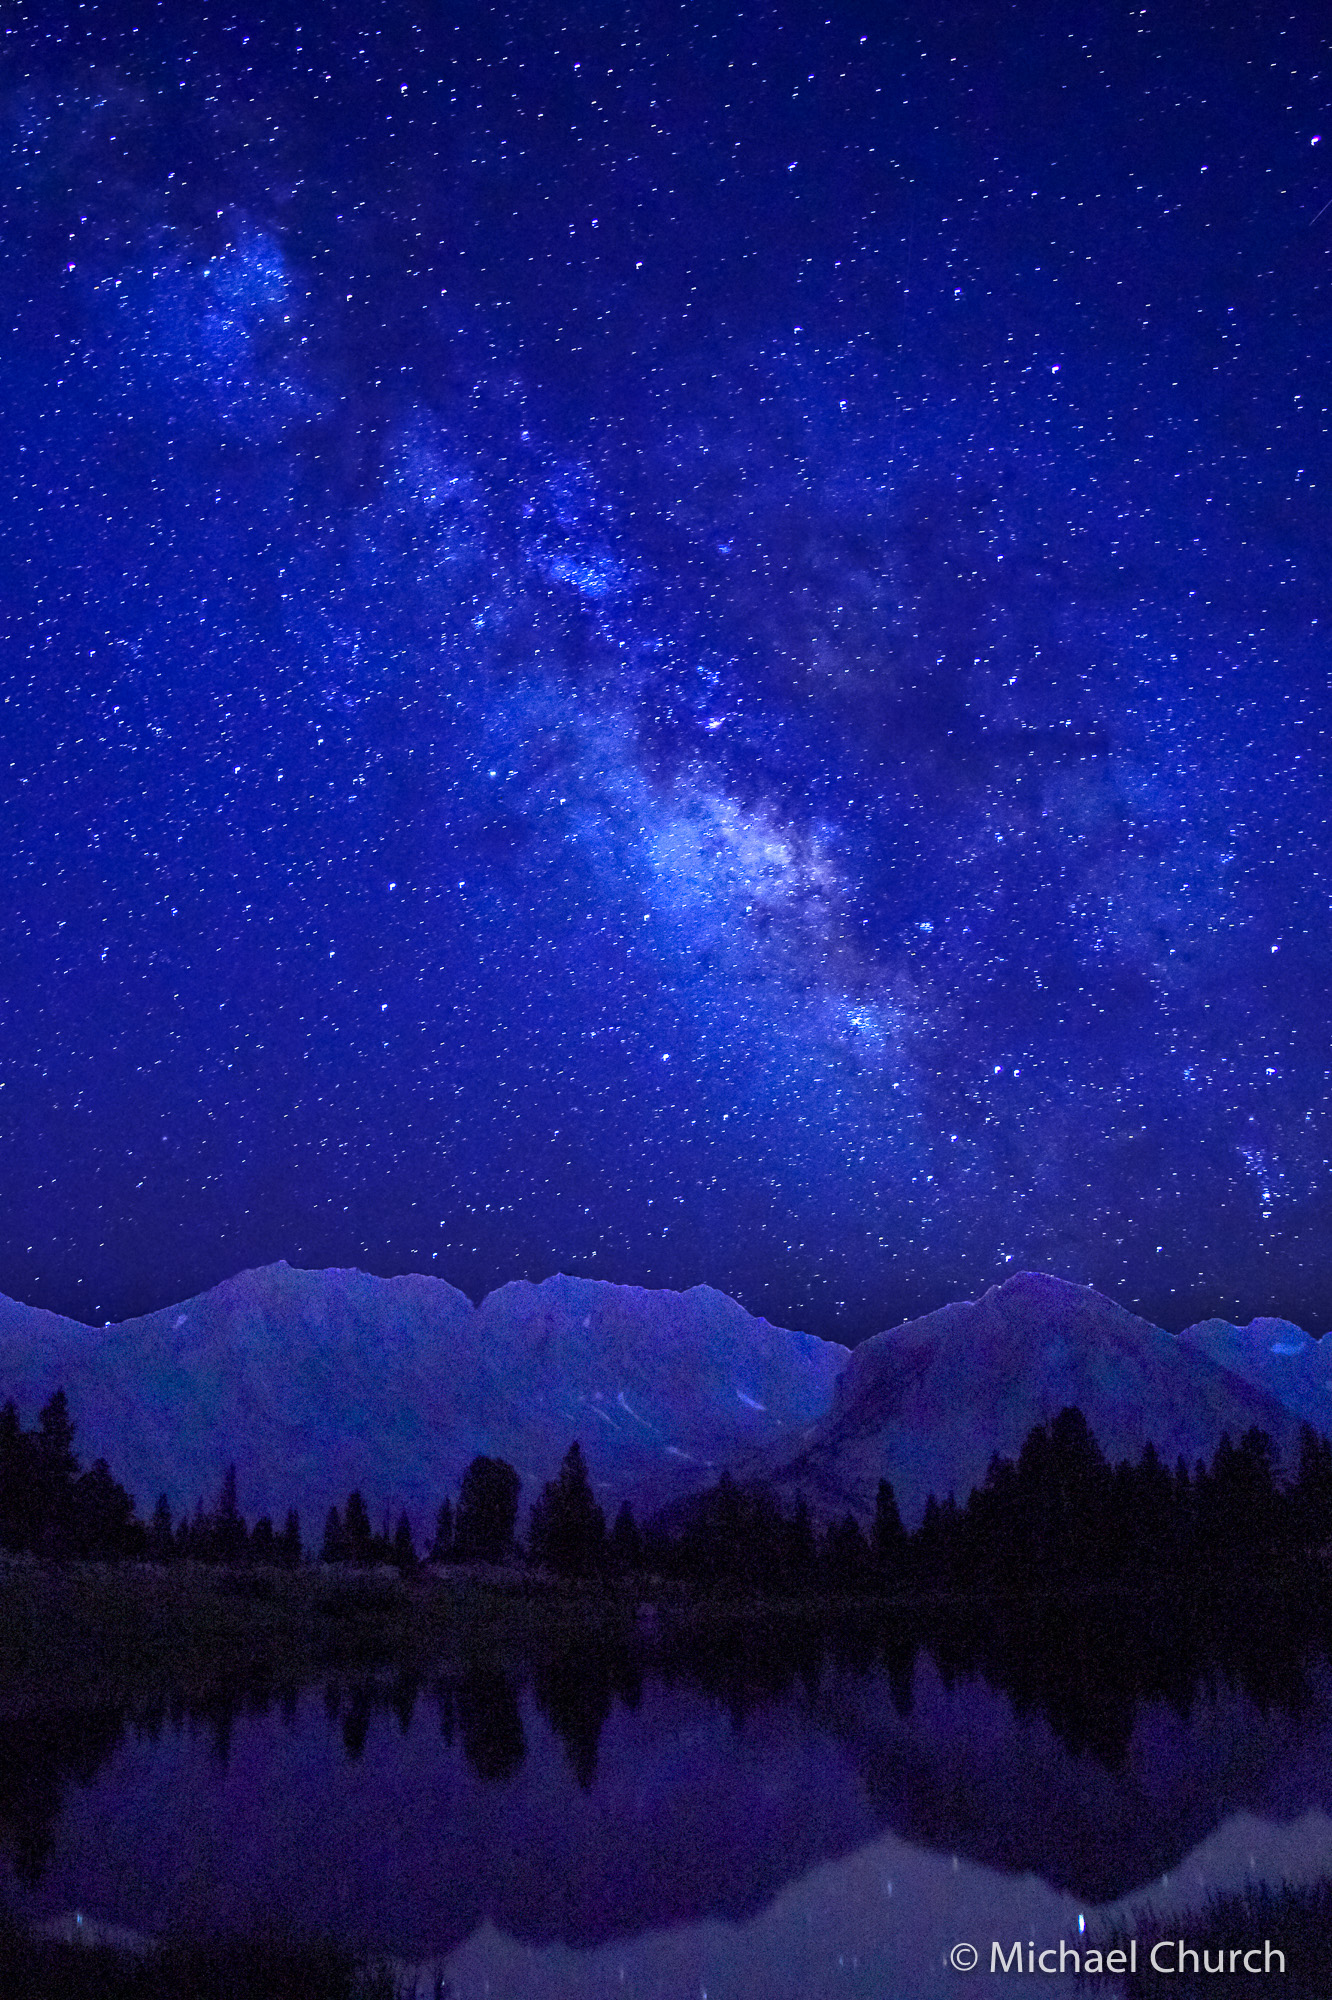 Milky Way_1182smaller_2K.jpg